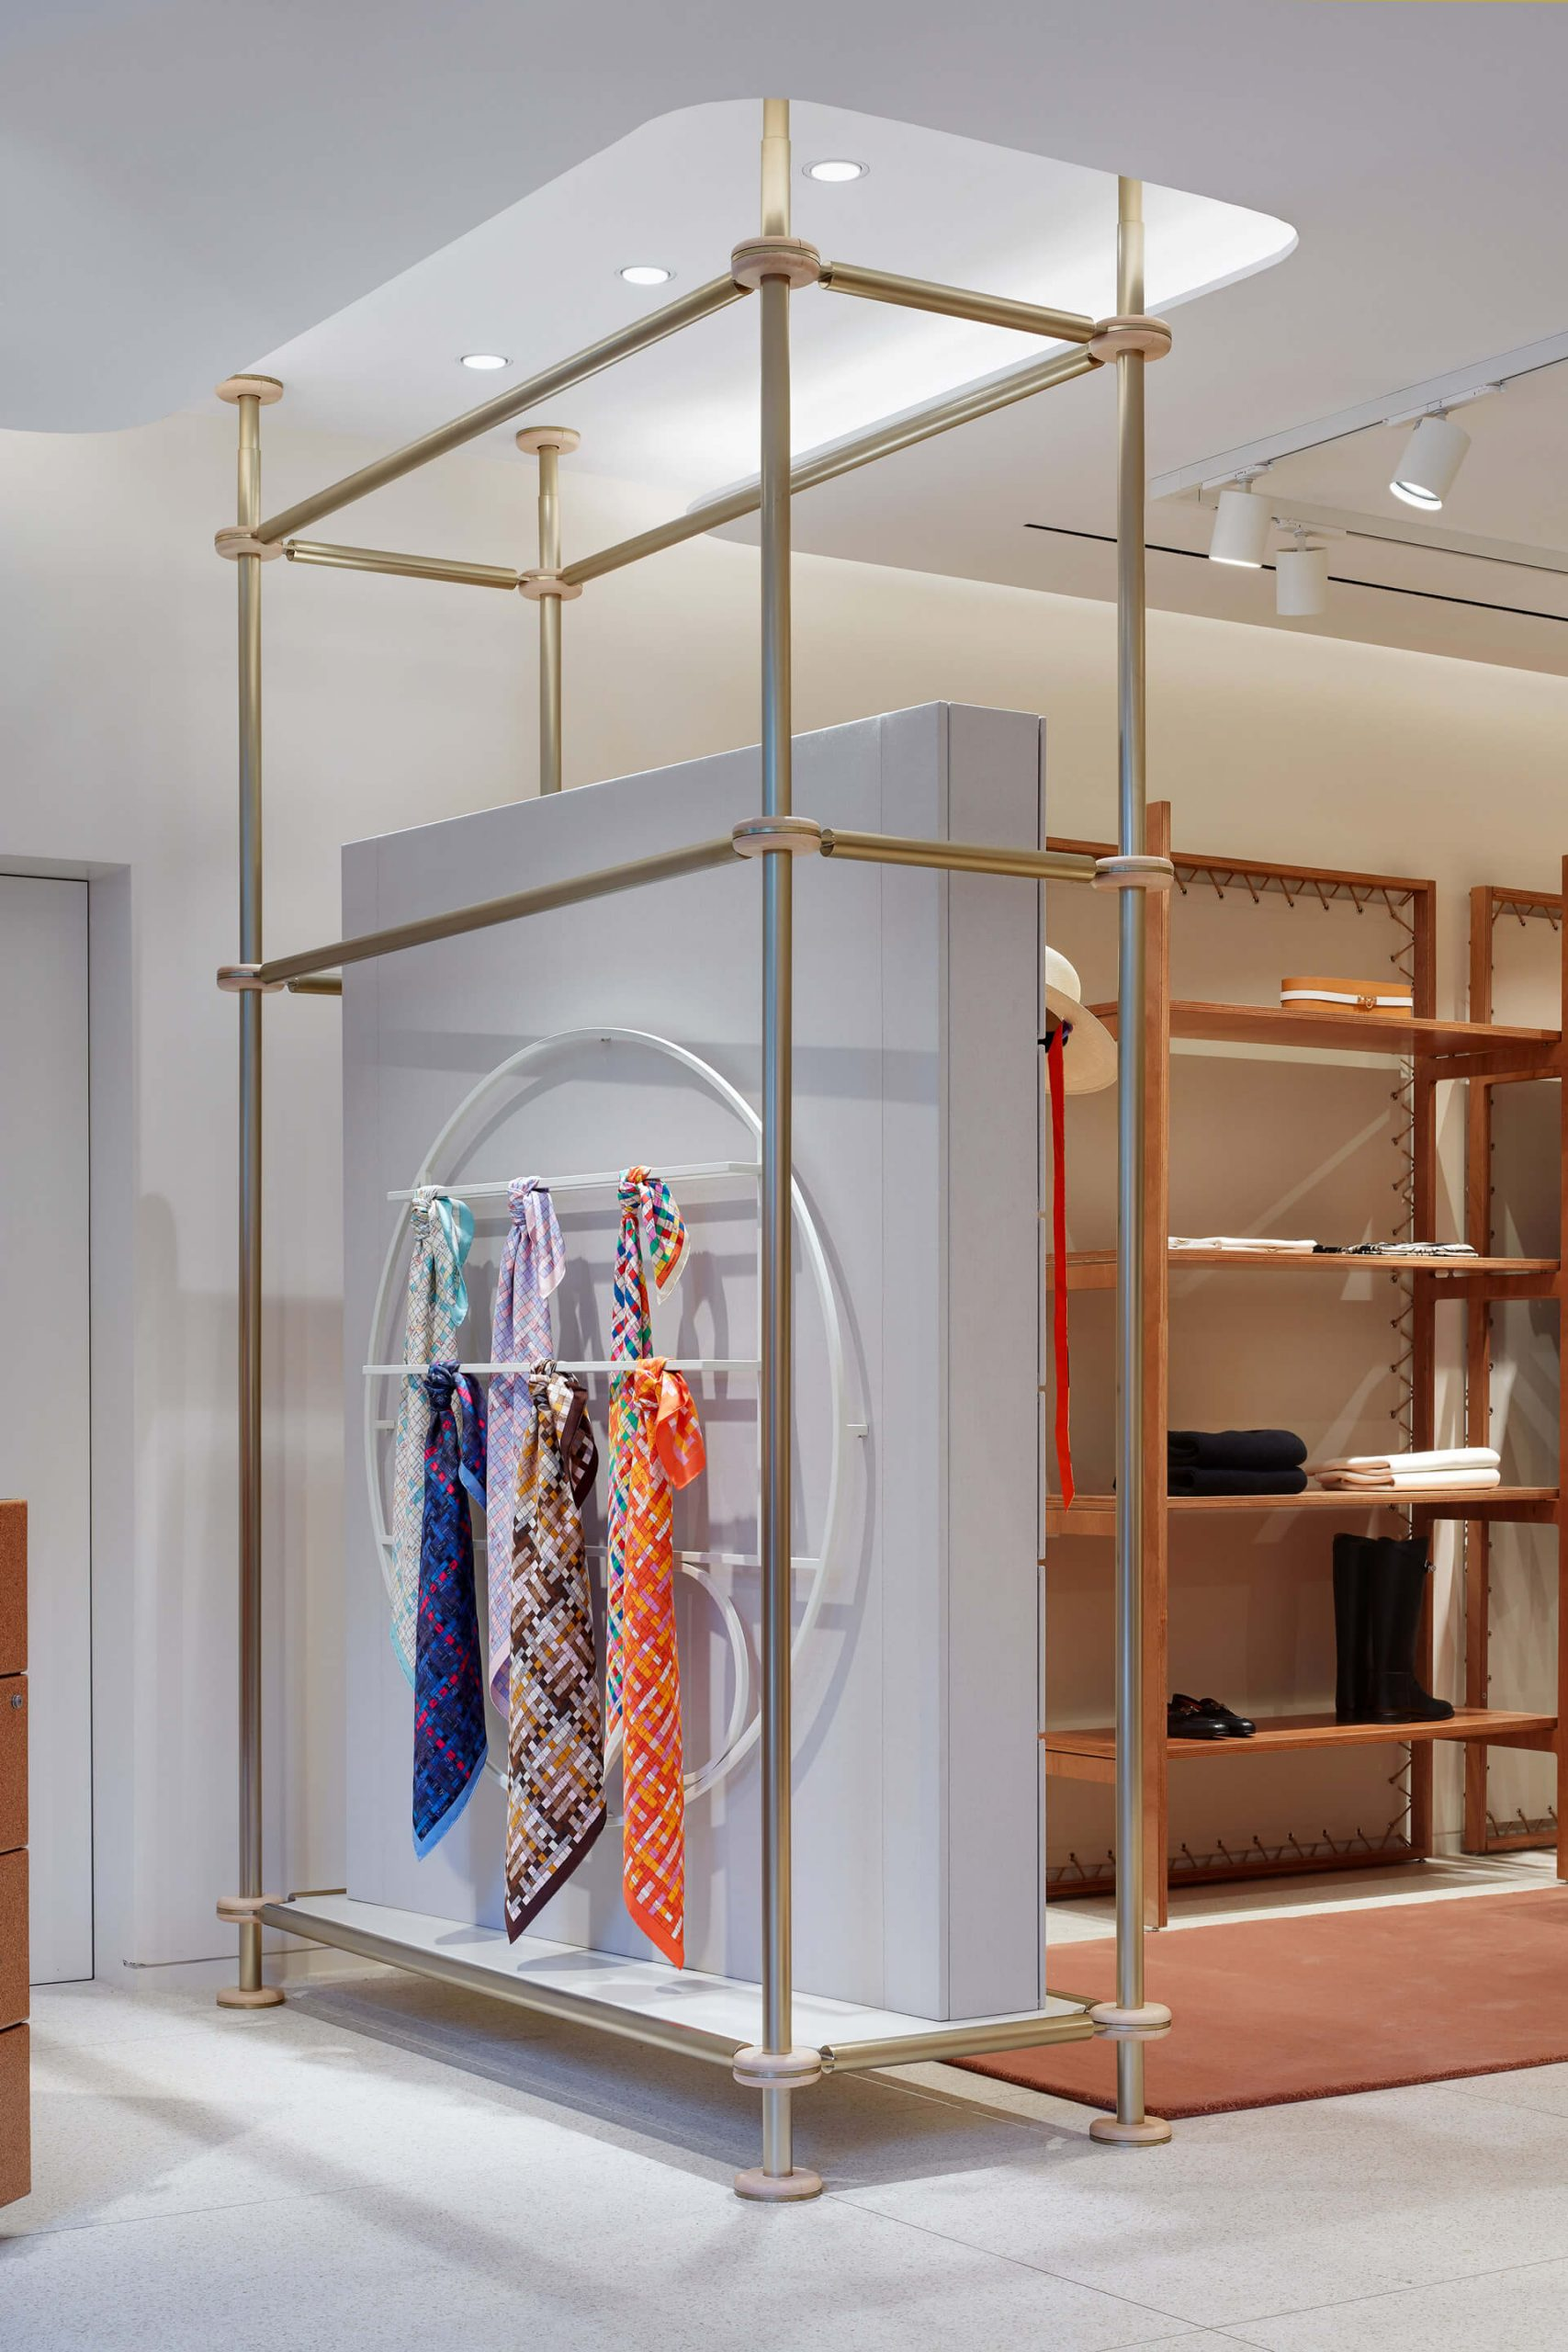 hermes-store-cologne-8